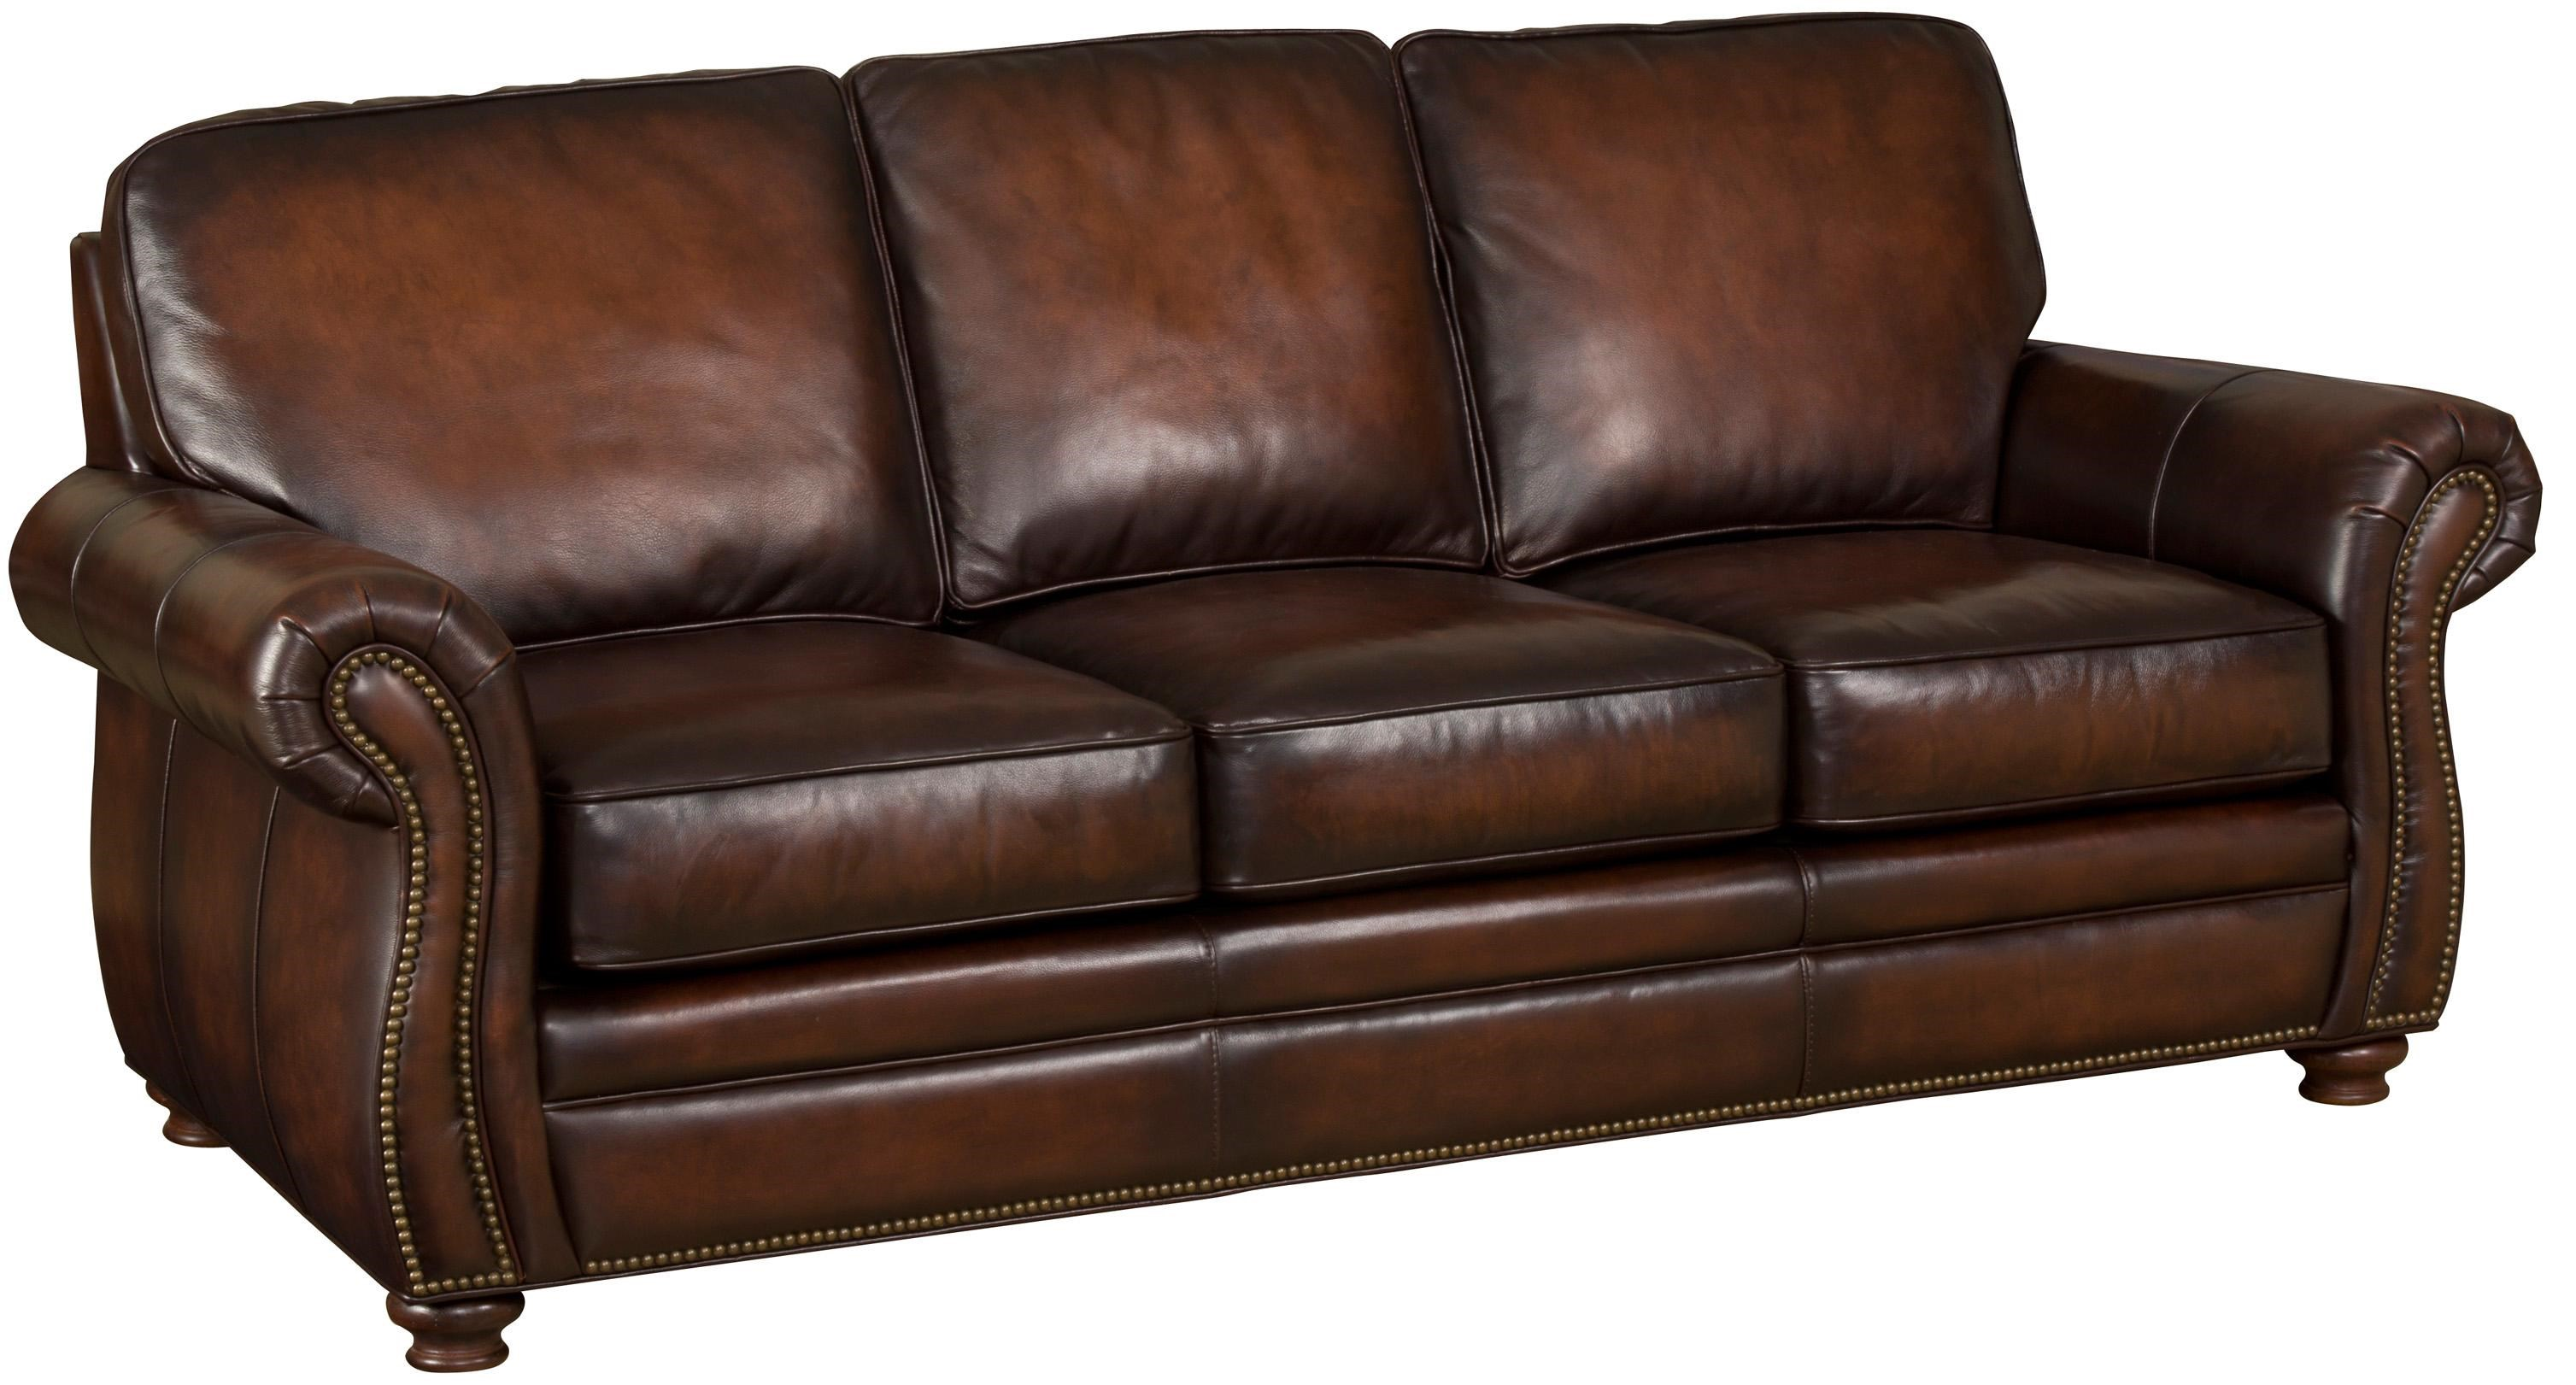 Hamilton Home SS186 Brown Leather Sofa With Exposed Wood Bun Feet